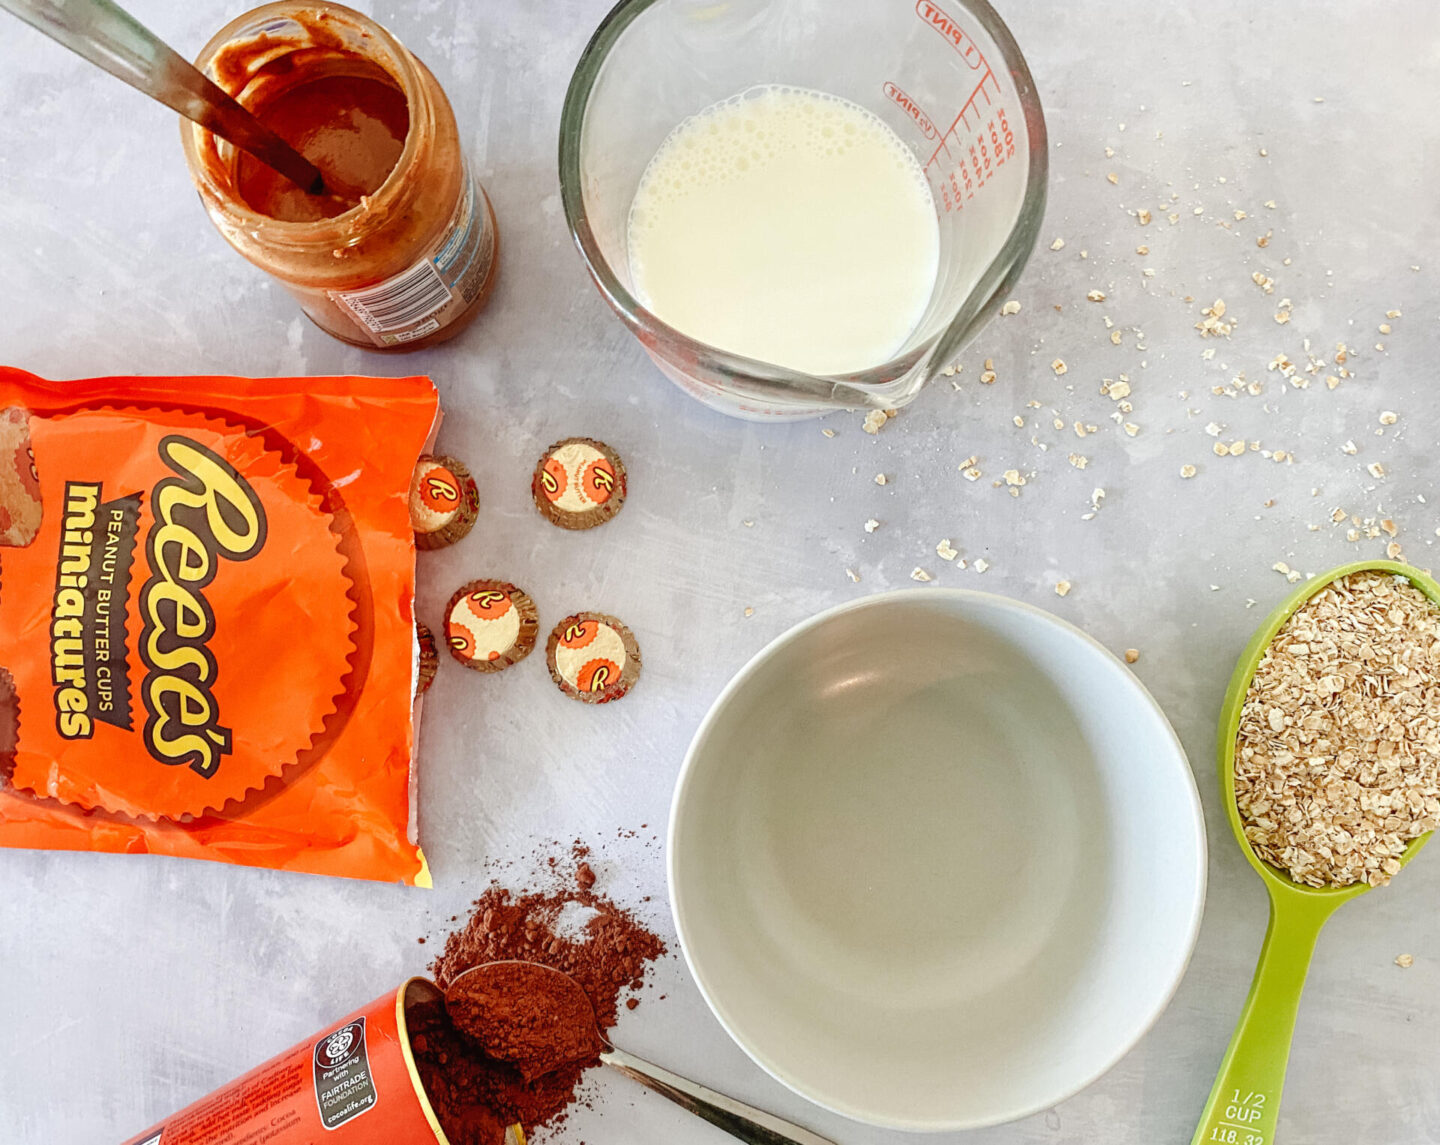 Reese's Peanut Butter Overnight Oats Recipe Ingredients